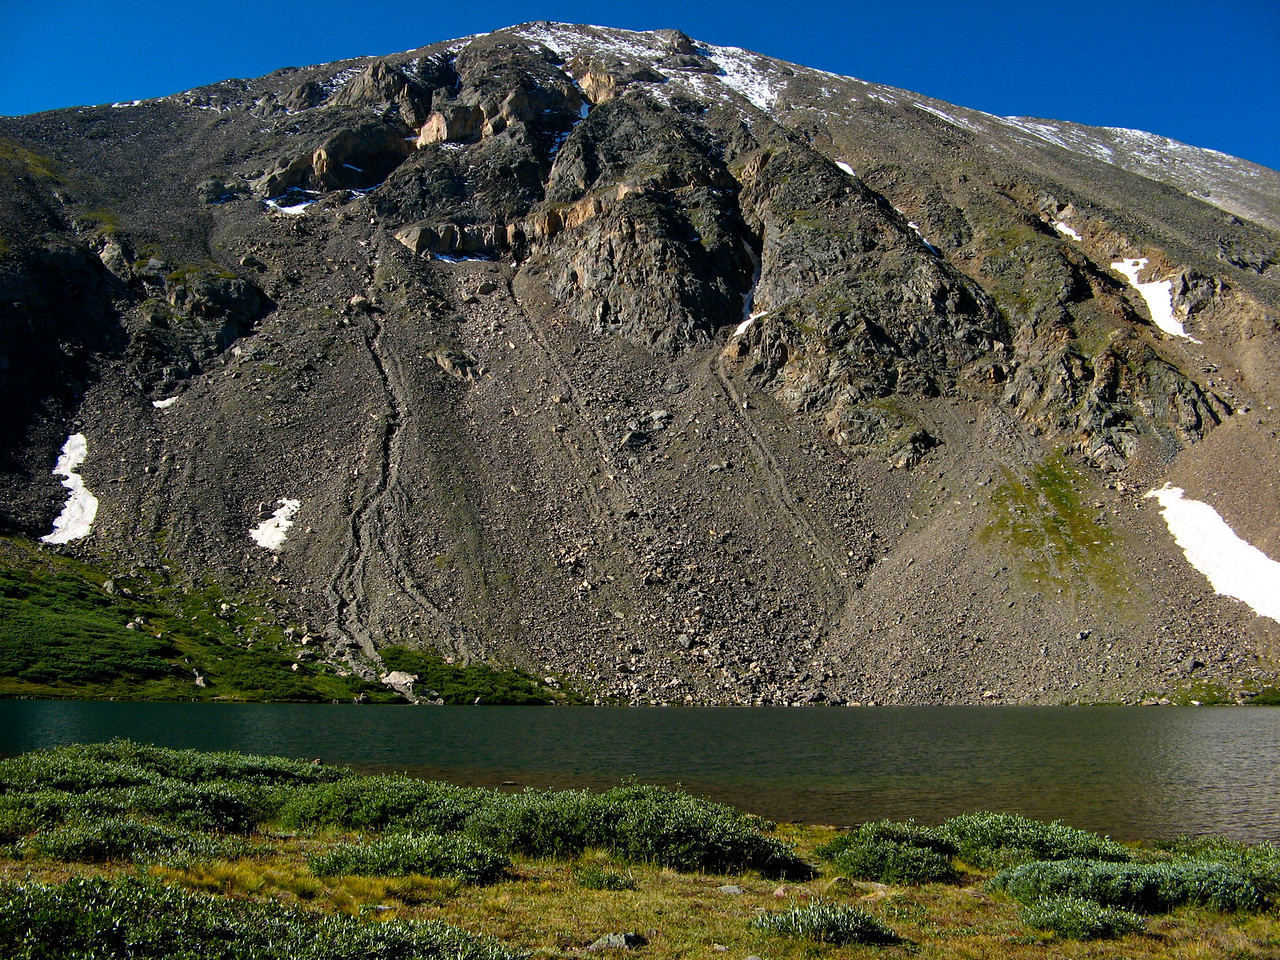 Silver Dollar Lake was formed from glacial deposits many years ago.